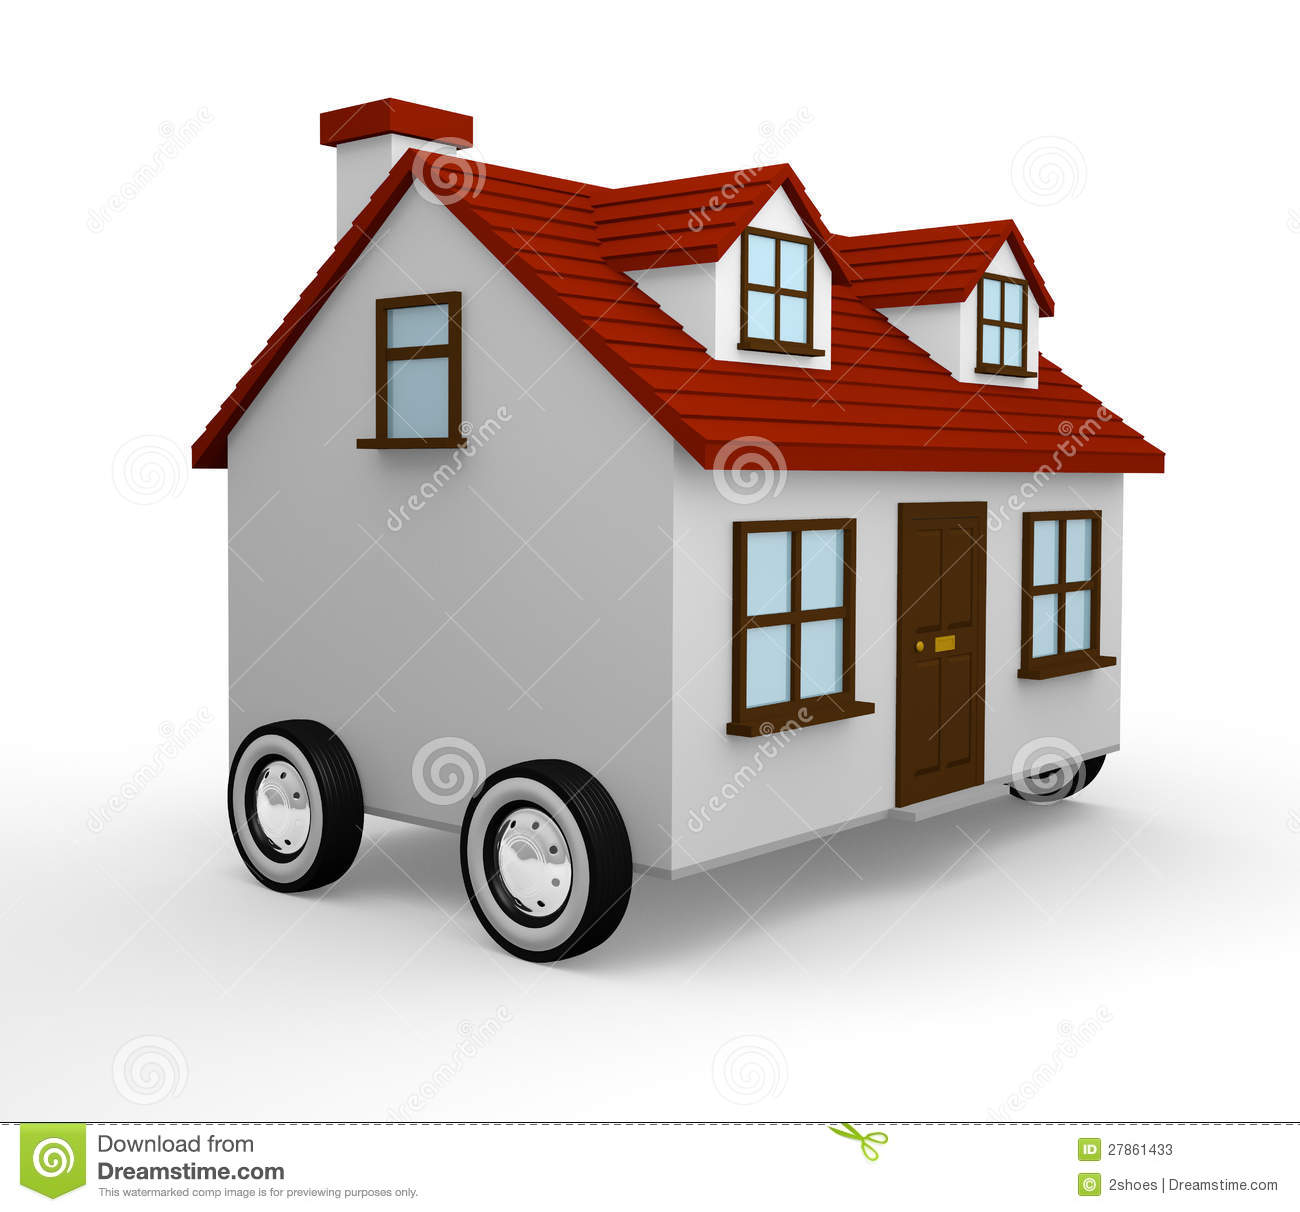 Moving house stock photos image 27861433 When is the best time to move house